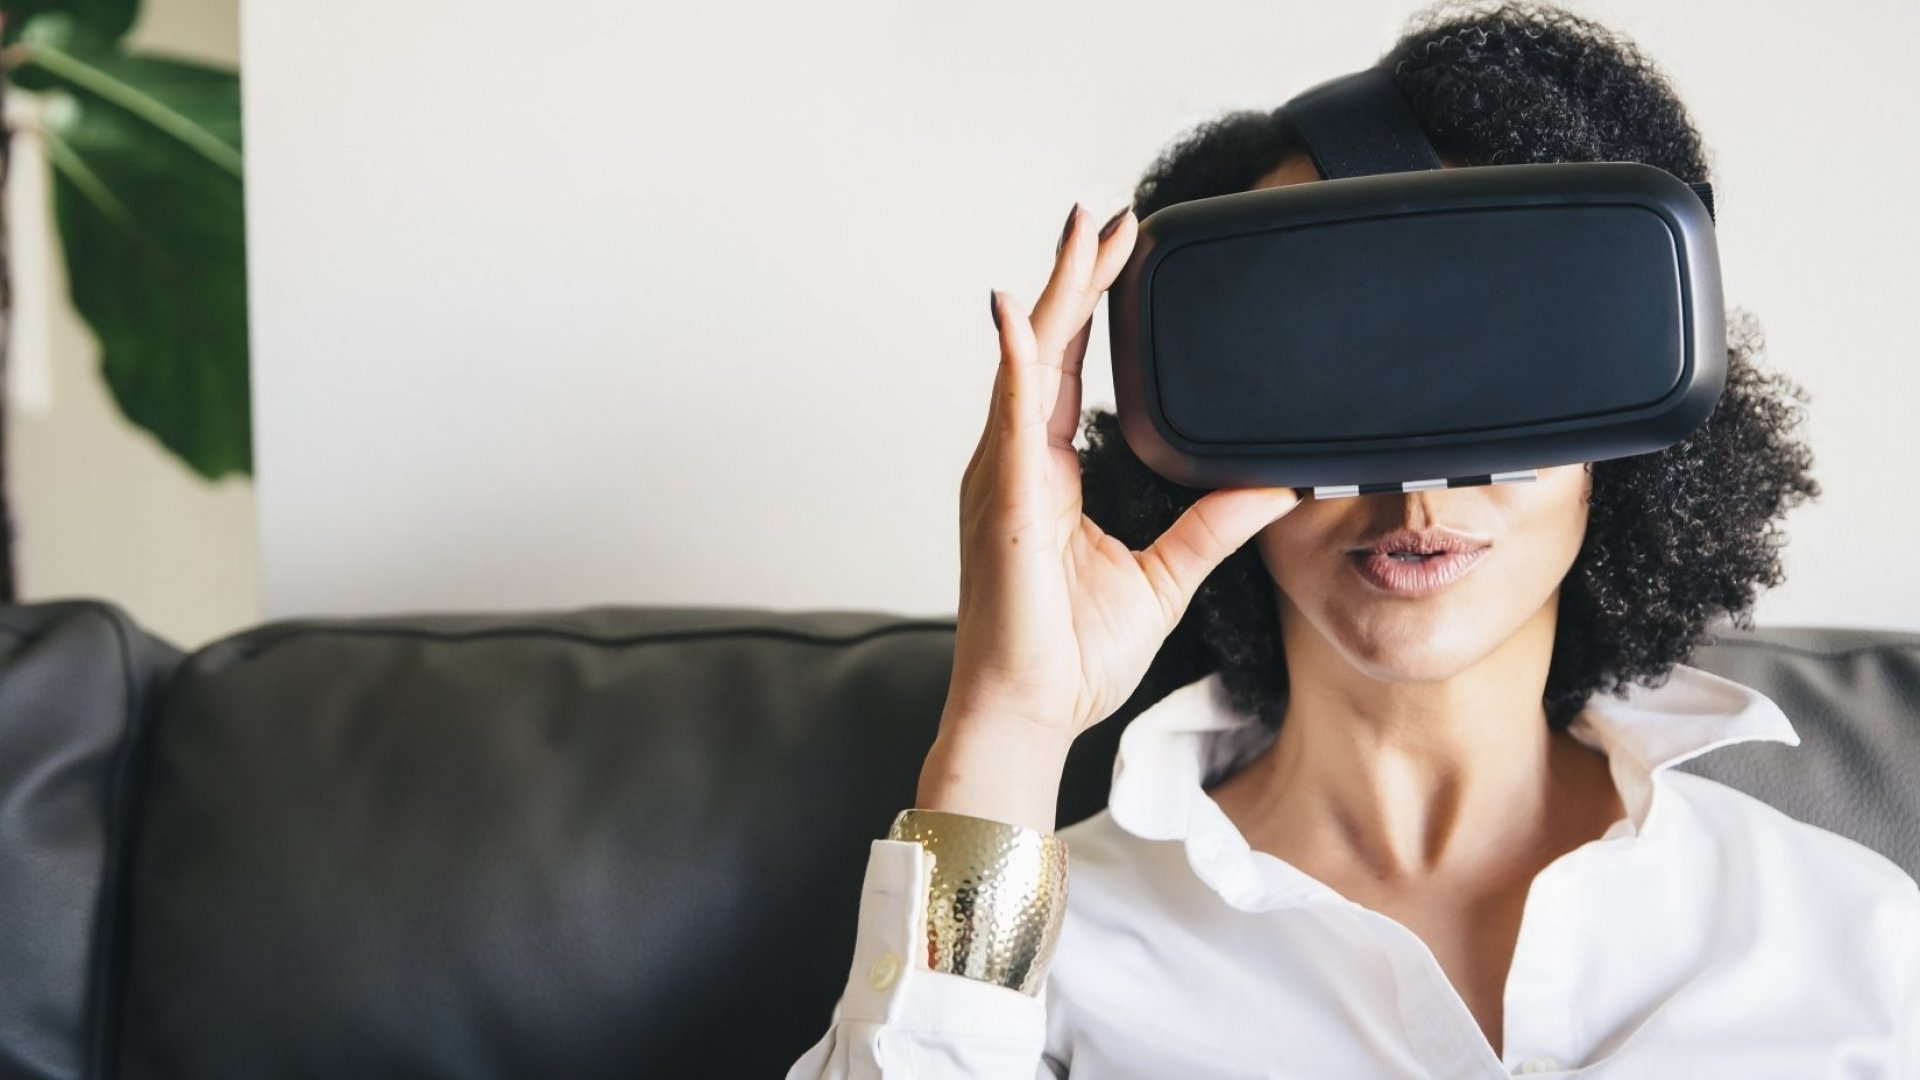 The Coolest Ways Retailers Are Letting Customers Use Virtual Reality